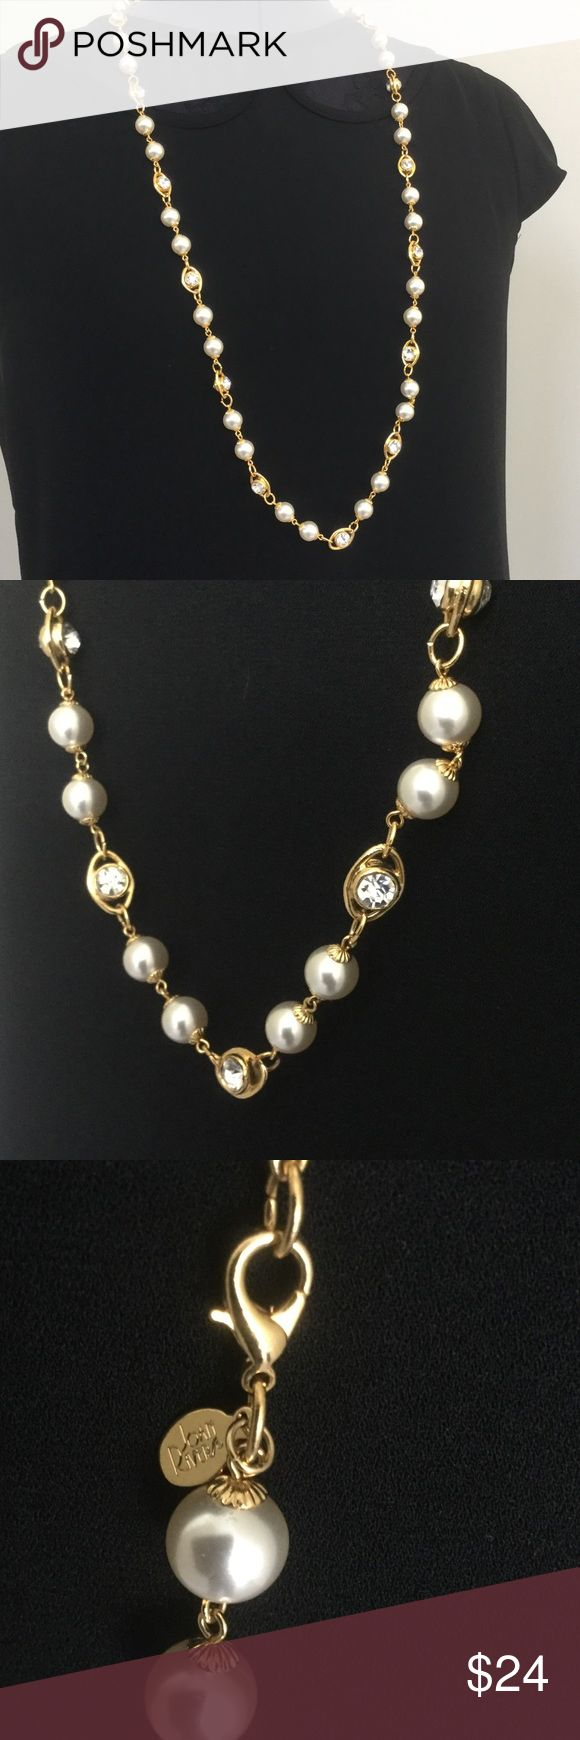 "🆕 Beautiful necklace by Joan Rivers This beautiful necklace by Joan Rivers is stunning! Approximate length is 18"". A perfect edition for any wardrobe! Joan Rivers Jewelry Necklaces"